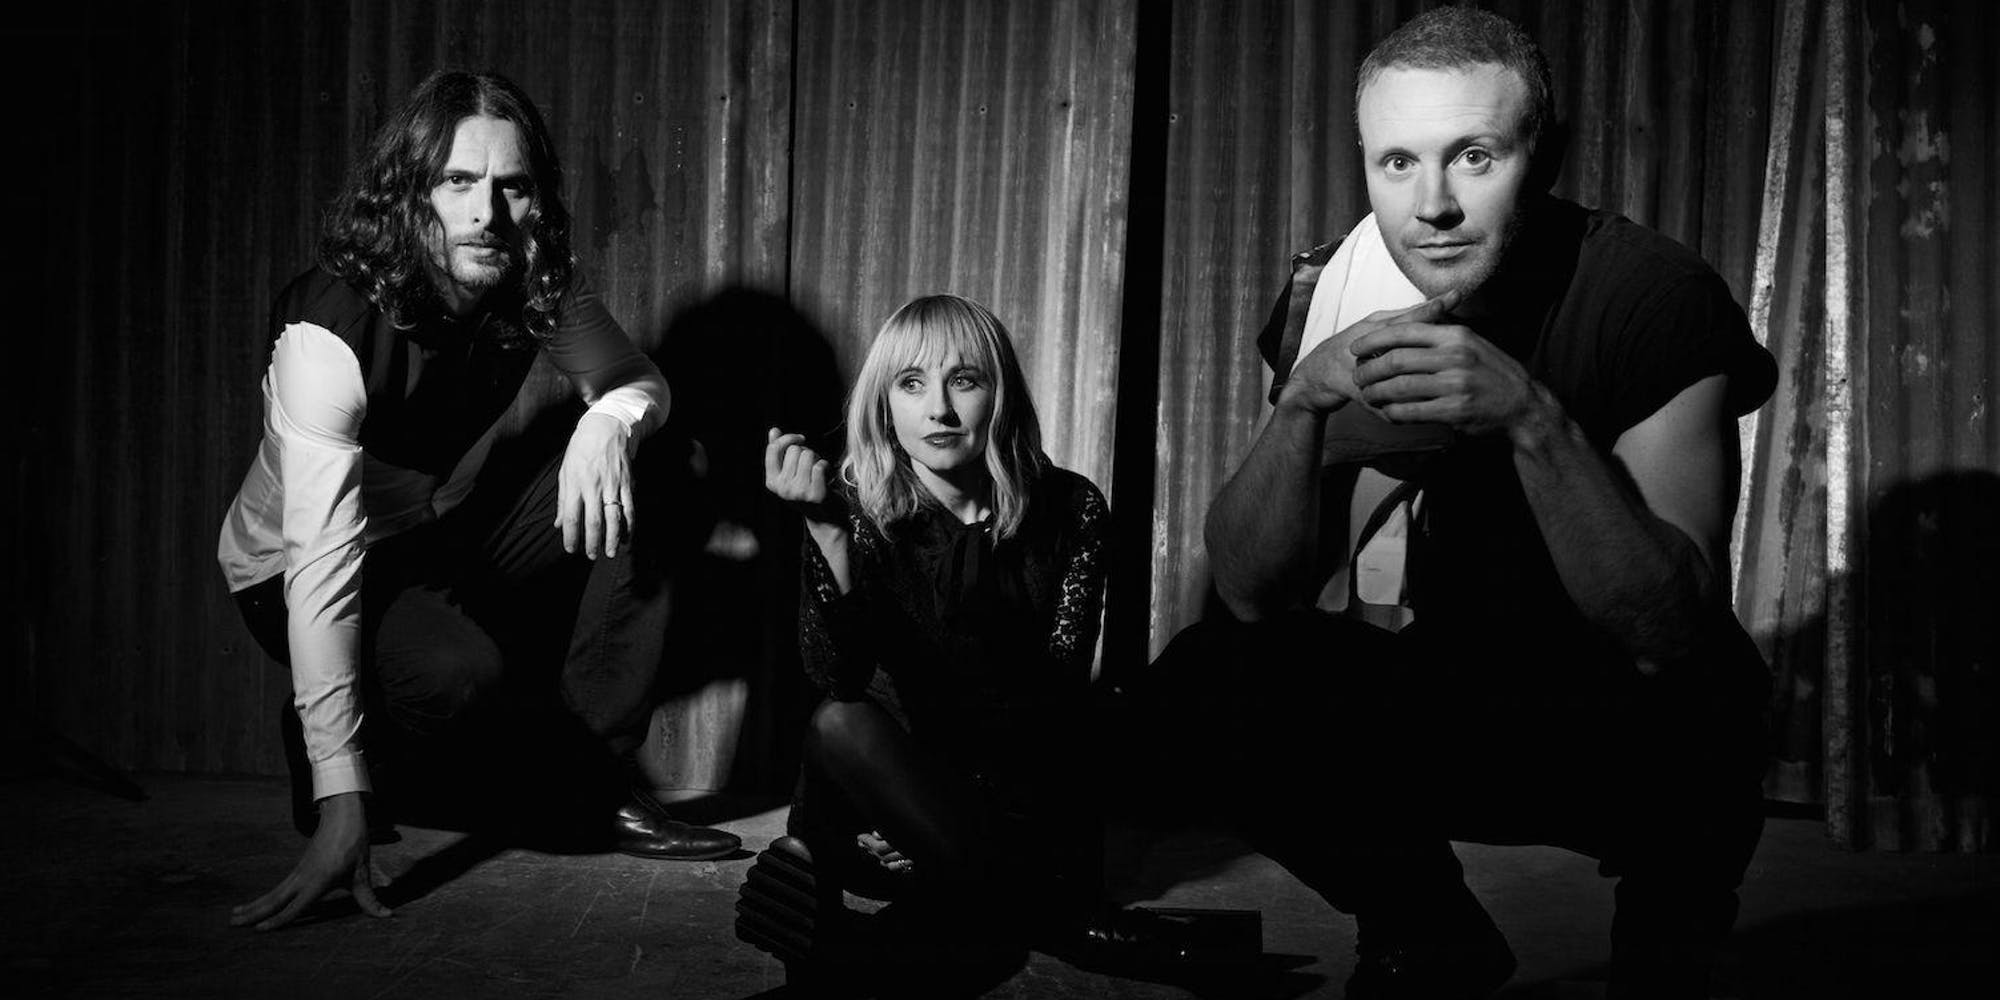 The-Joy-Formidable_Please-upload-a-lower-res-web-JPEG-photo-for-use-online